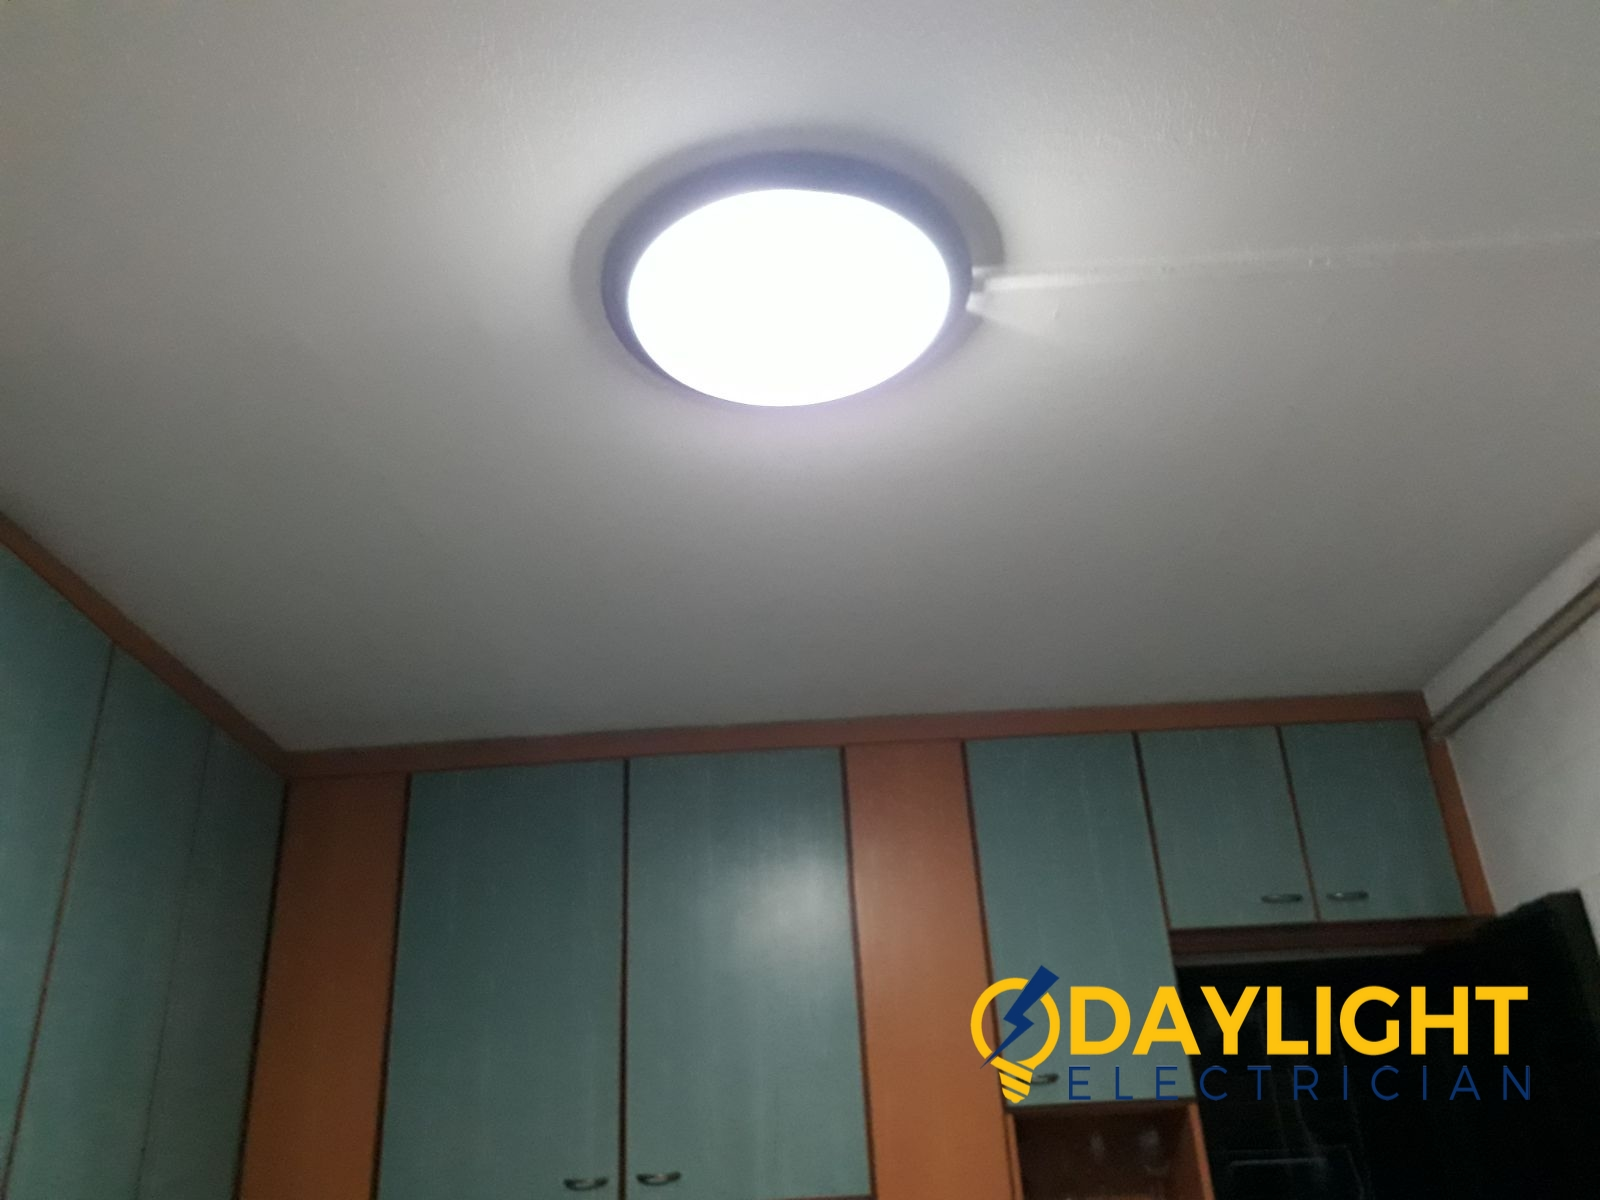 Change-round-fluorescent-tube-to-LED-bulb-HDB-electrician-singapore-4_wm